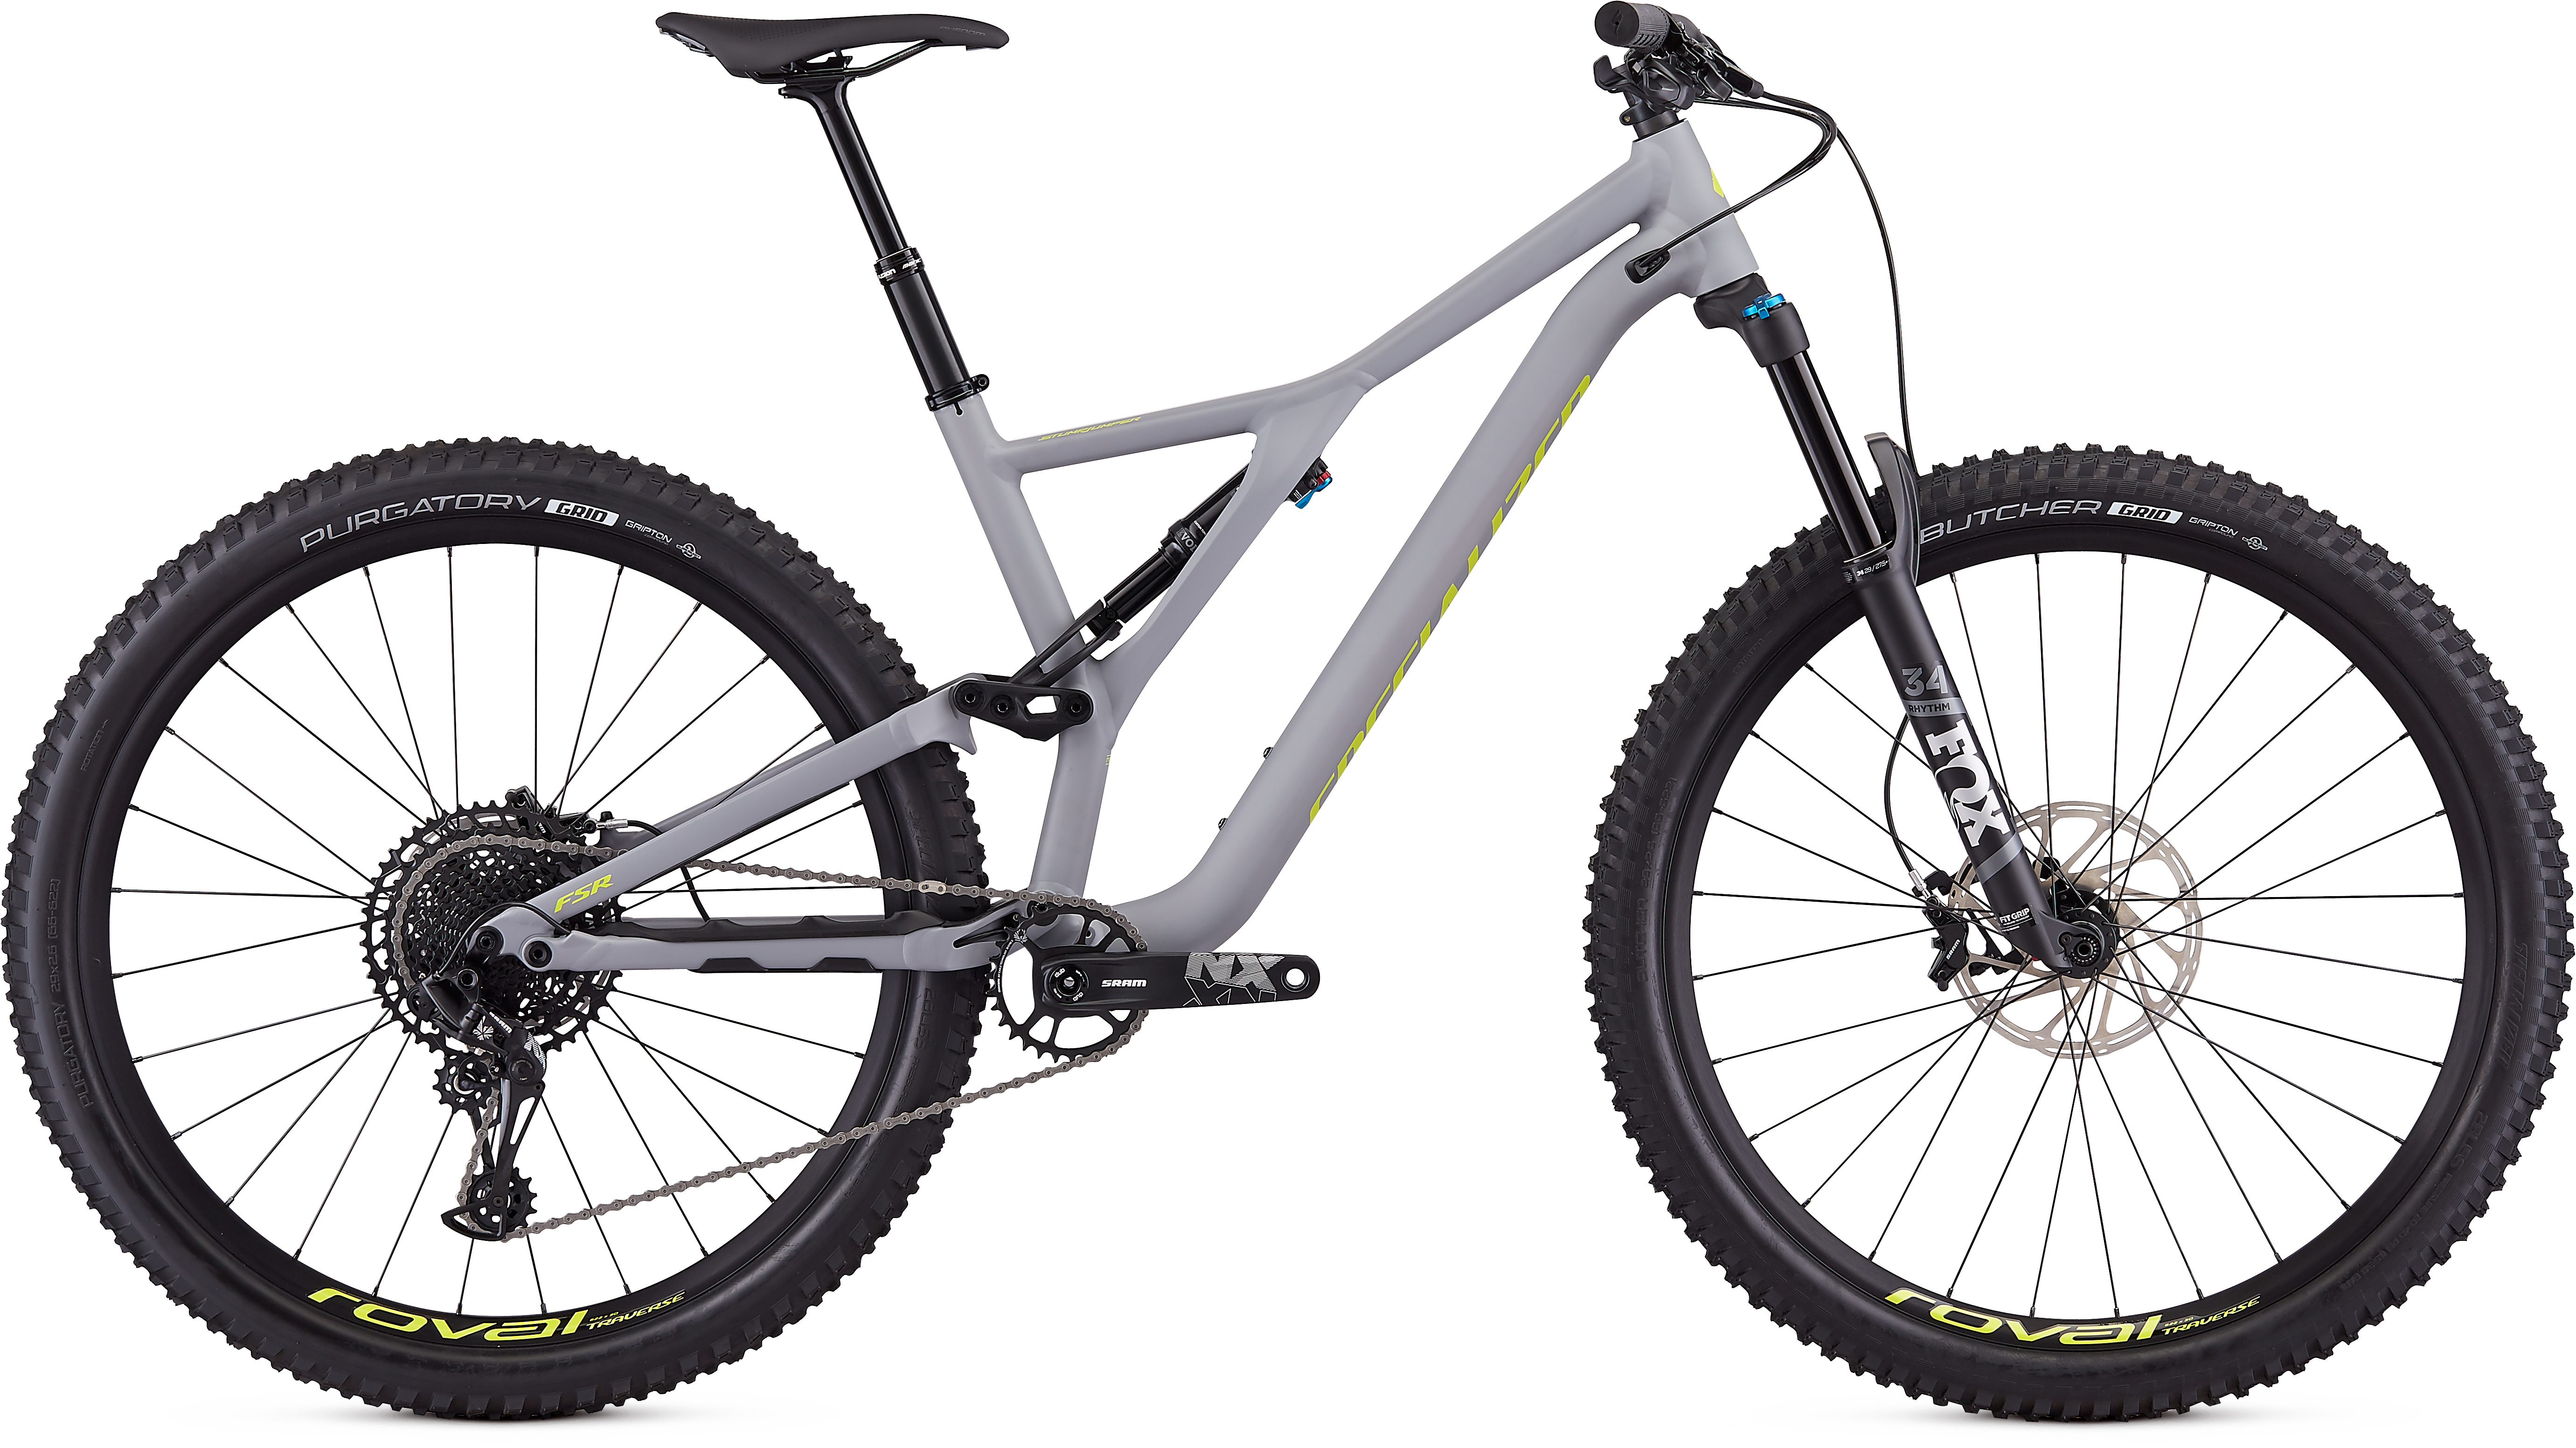 2019 Specialized Men's Stumpjumper Comp Alloy 29 – 12-Speed